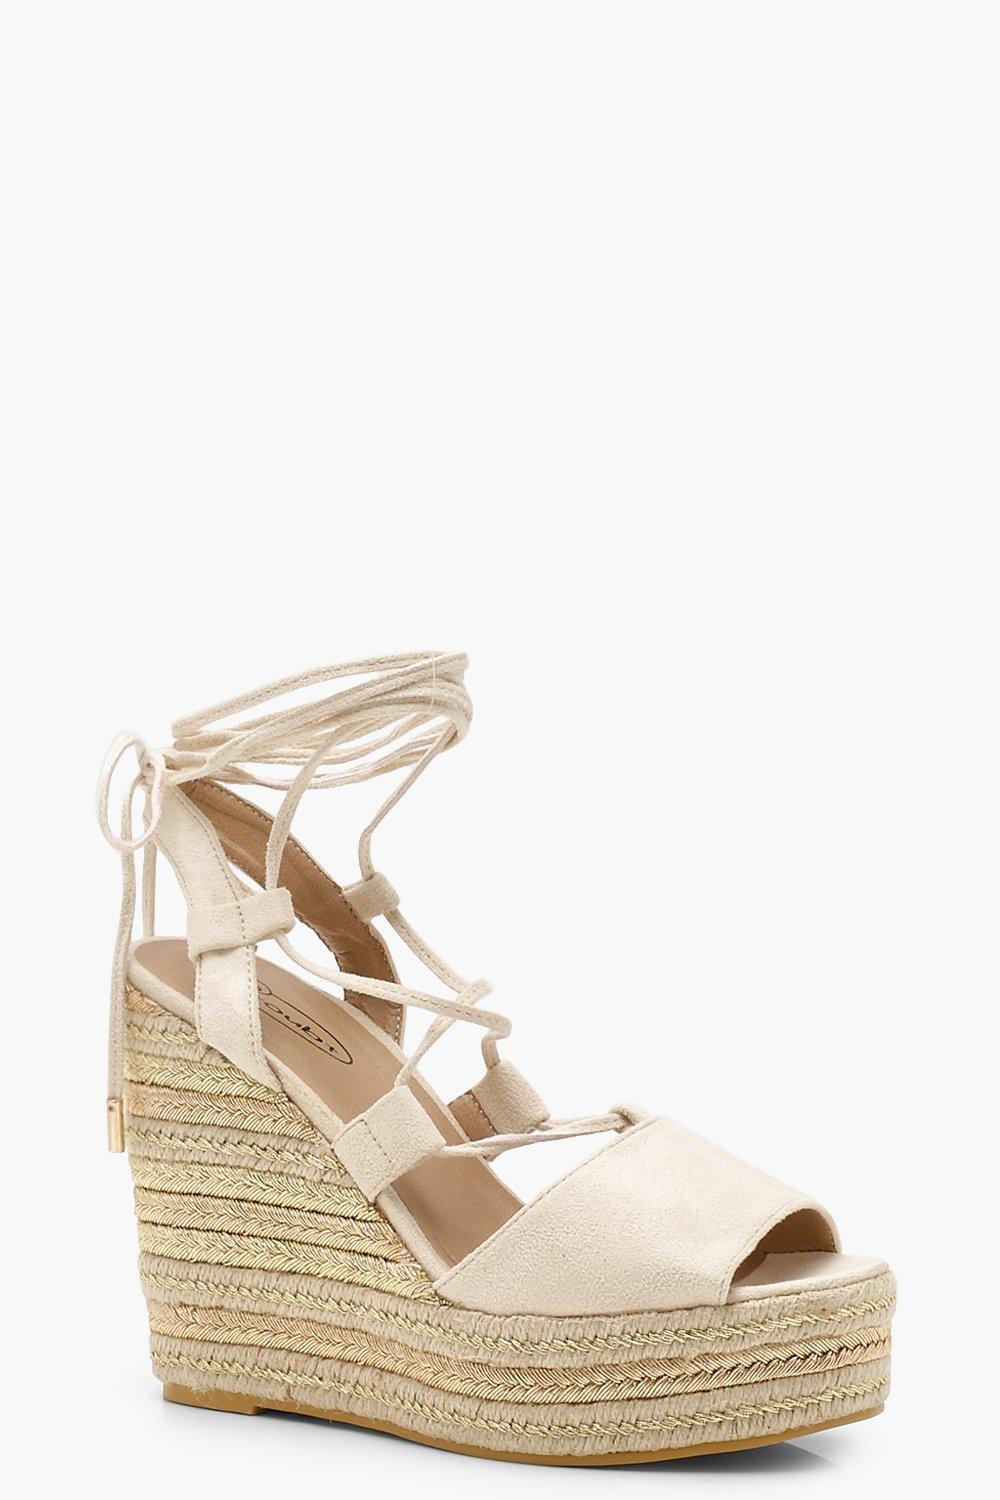 270ab3c1edc3 Boohoo Tie Up Espadrille Wedges in Natural - Lyst